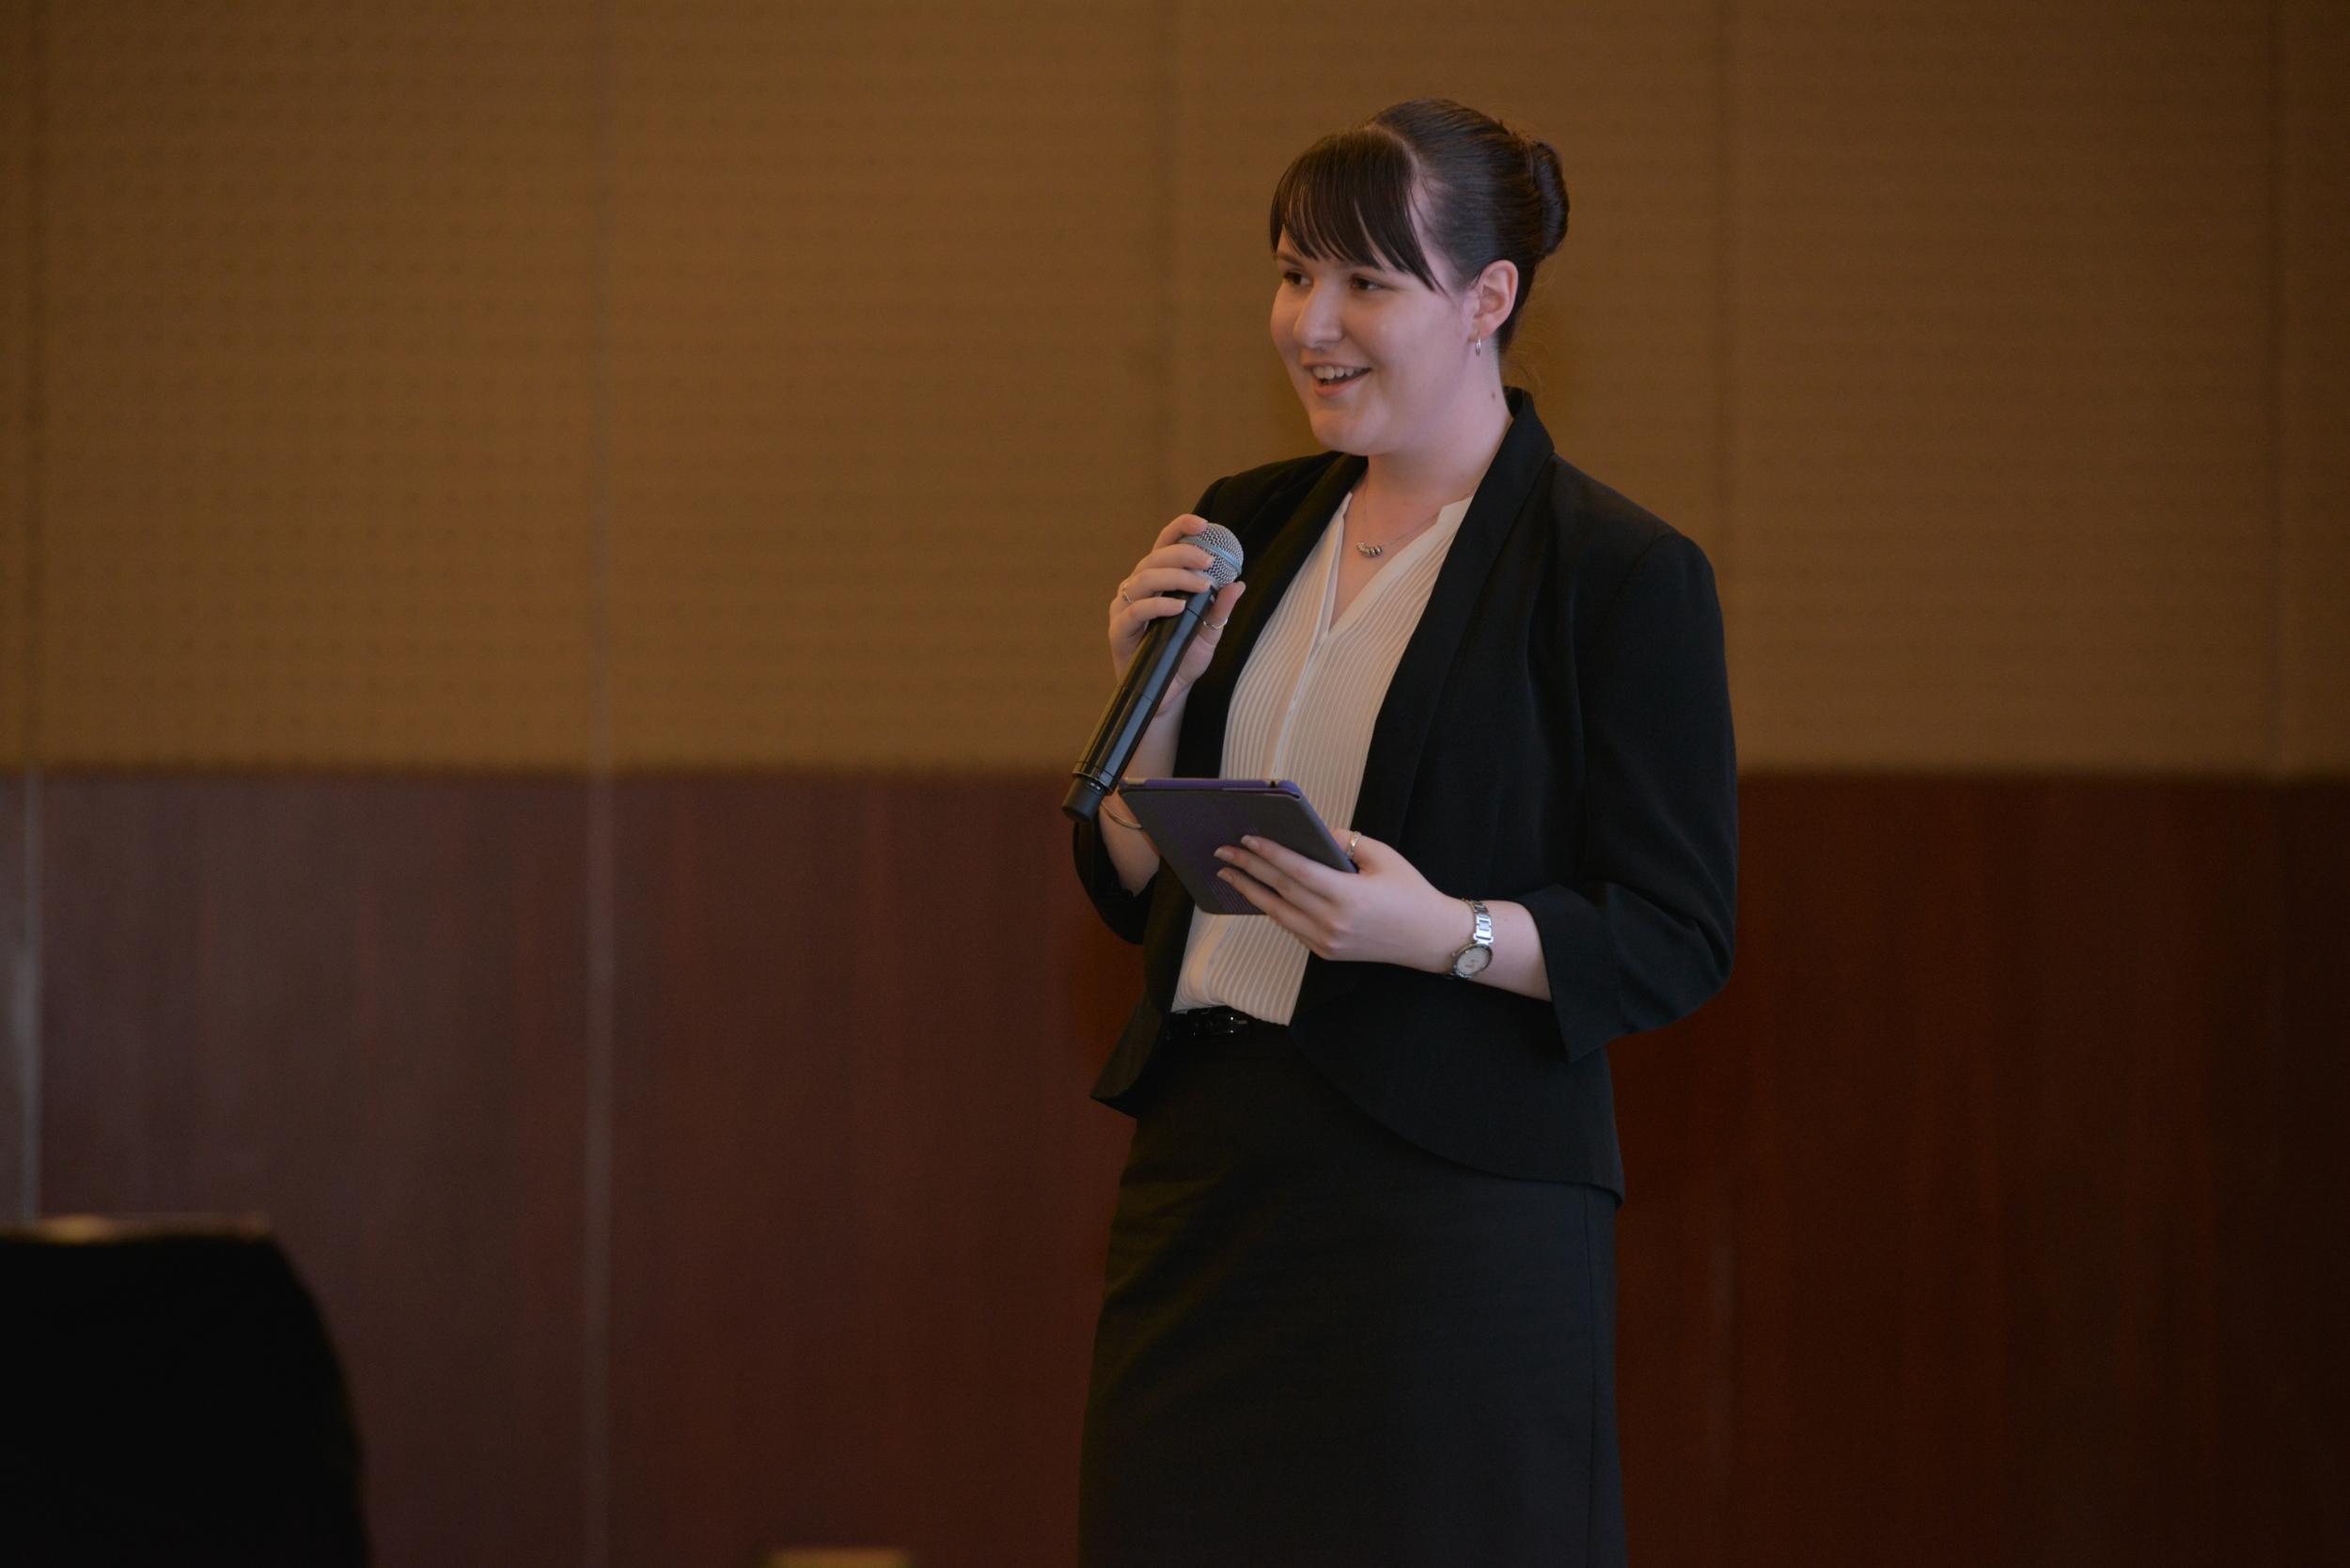 CQU student Rachael Stock presents to the Y20 Summit in China. Photo credit: Y20 China